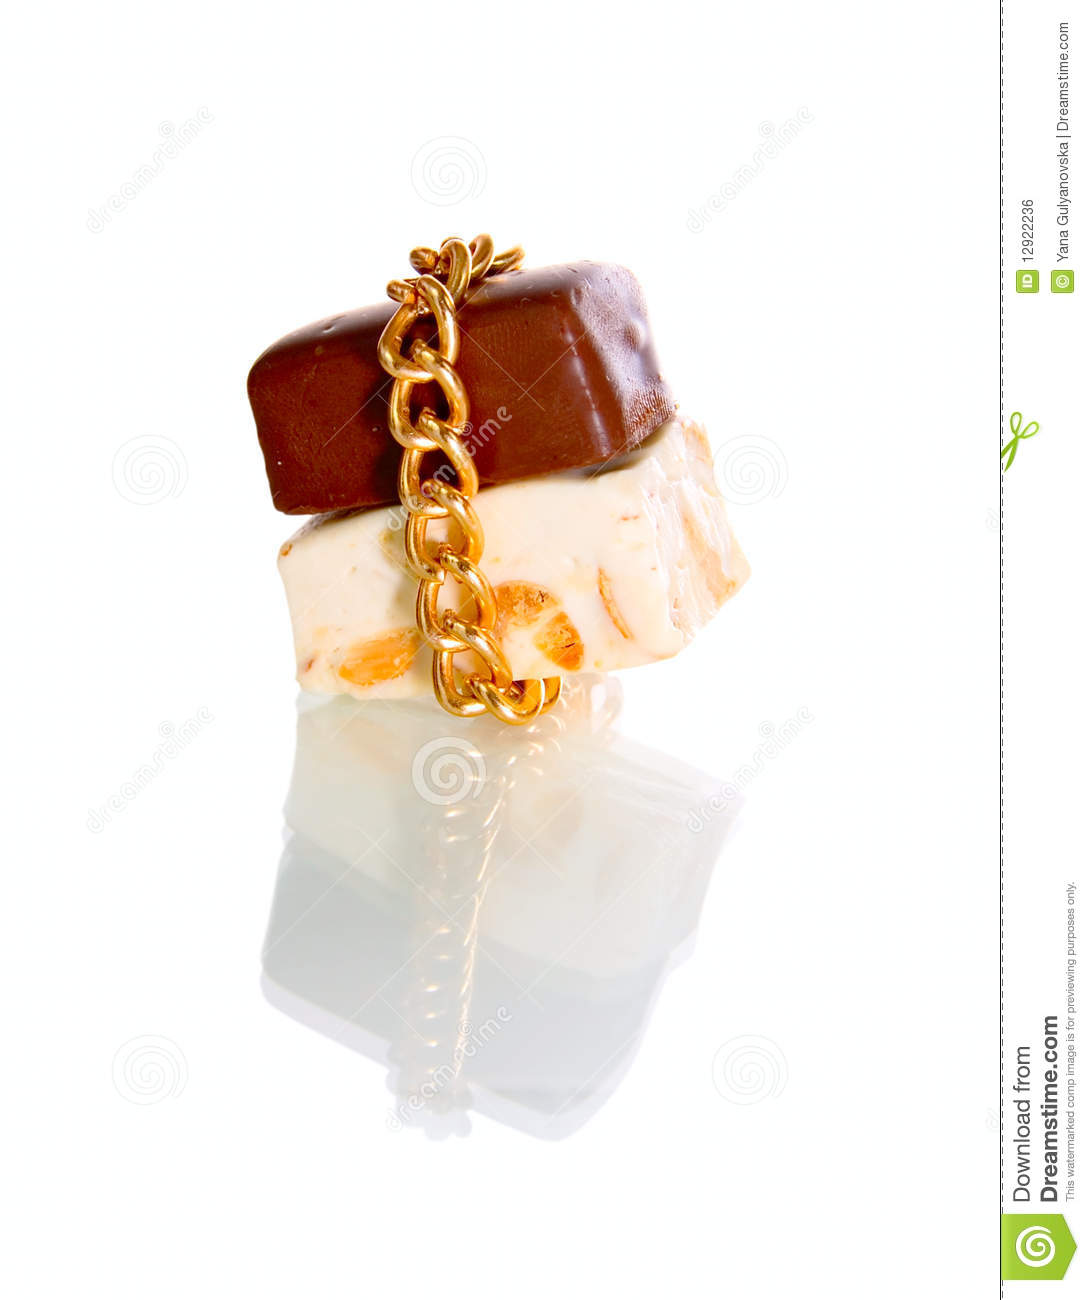 Gold Chain And Chocolate Candy Stock Photo - Image of golden